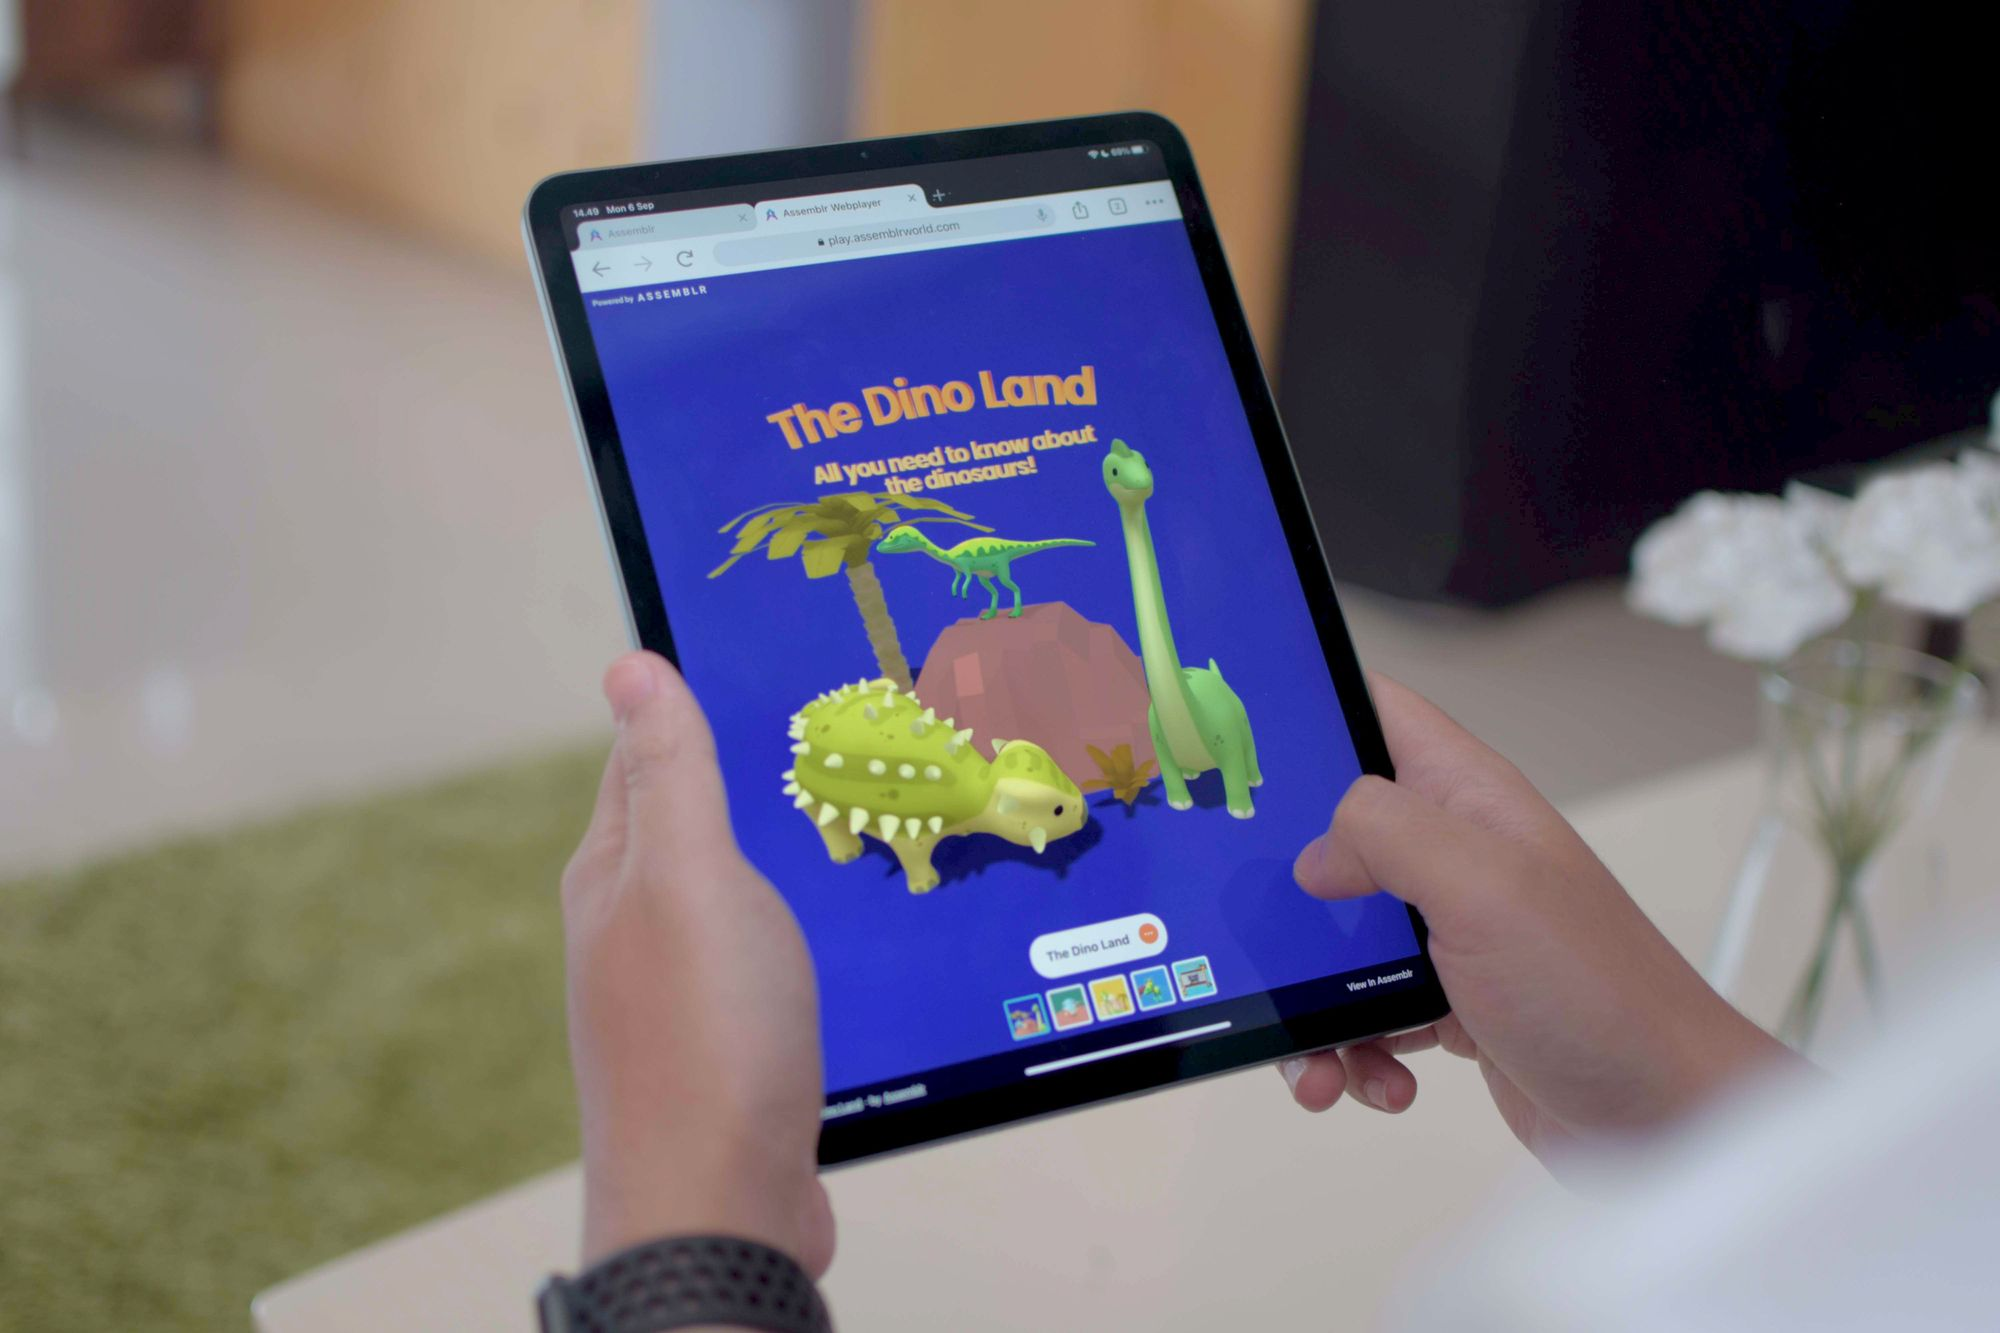 Accessing 3D and augmented reality (AR) contents easily in Assemblr Web Player